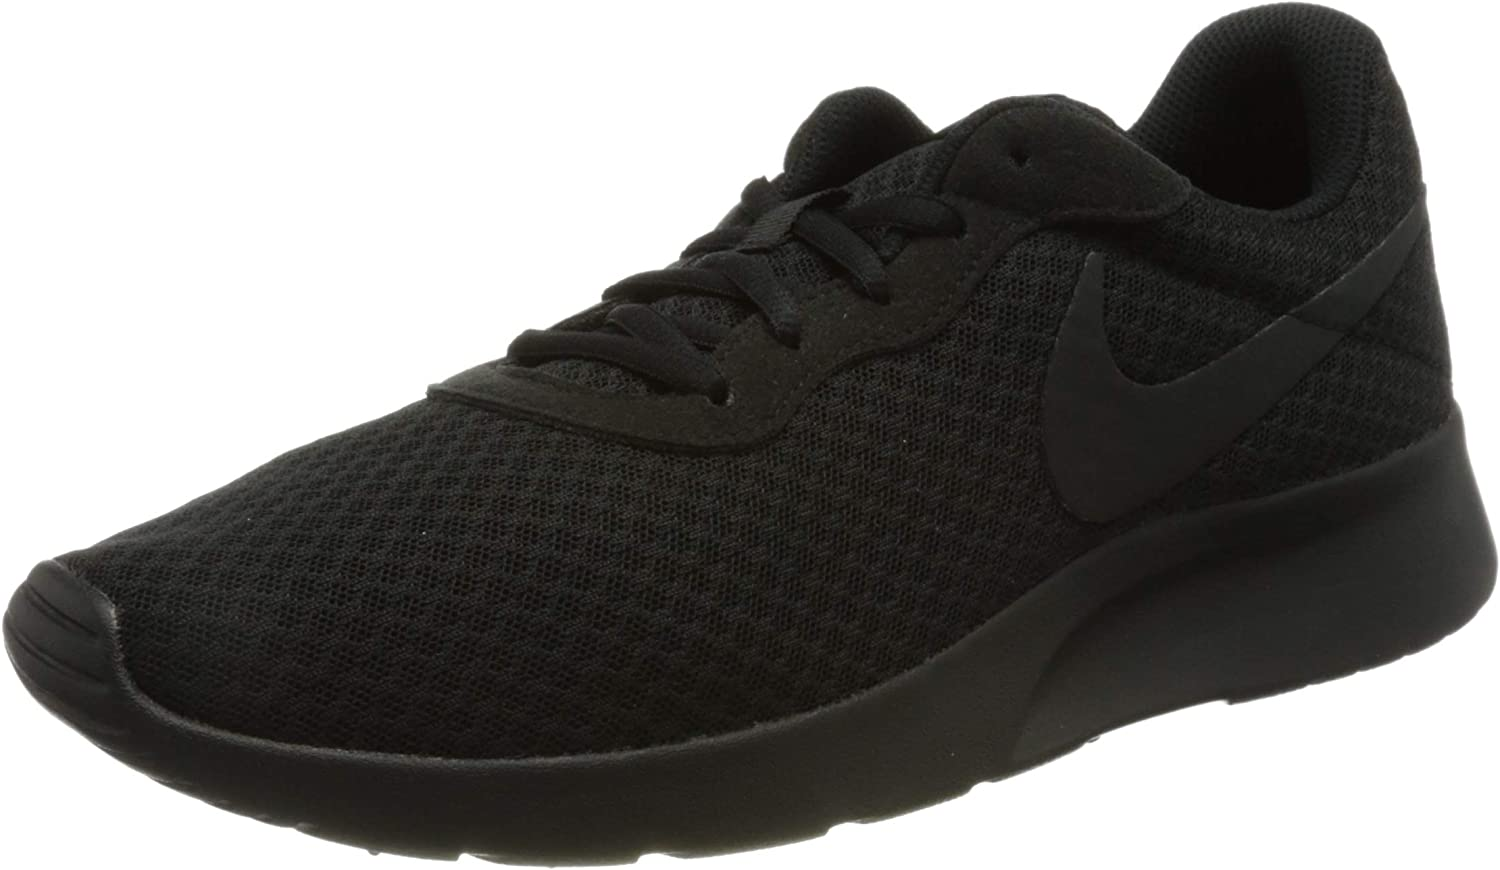 Complete Free Shipping NIKE Men's Tanjun Sneakers Breathable Super special price Textile Uppers and Comfor